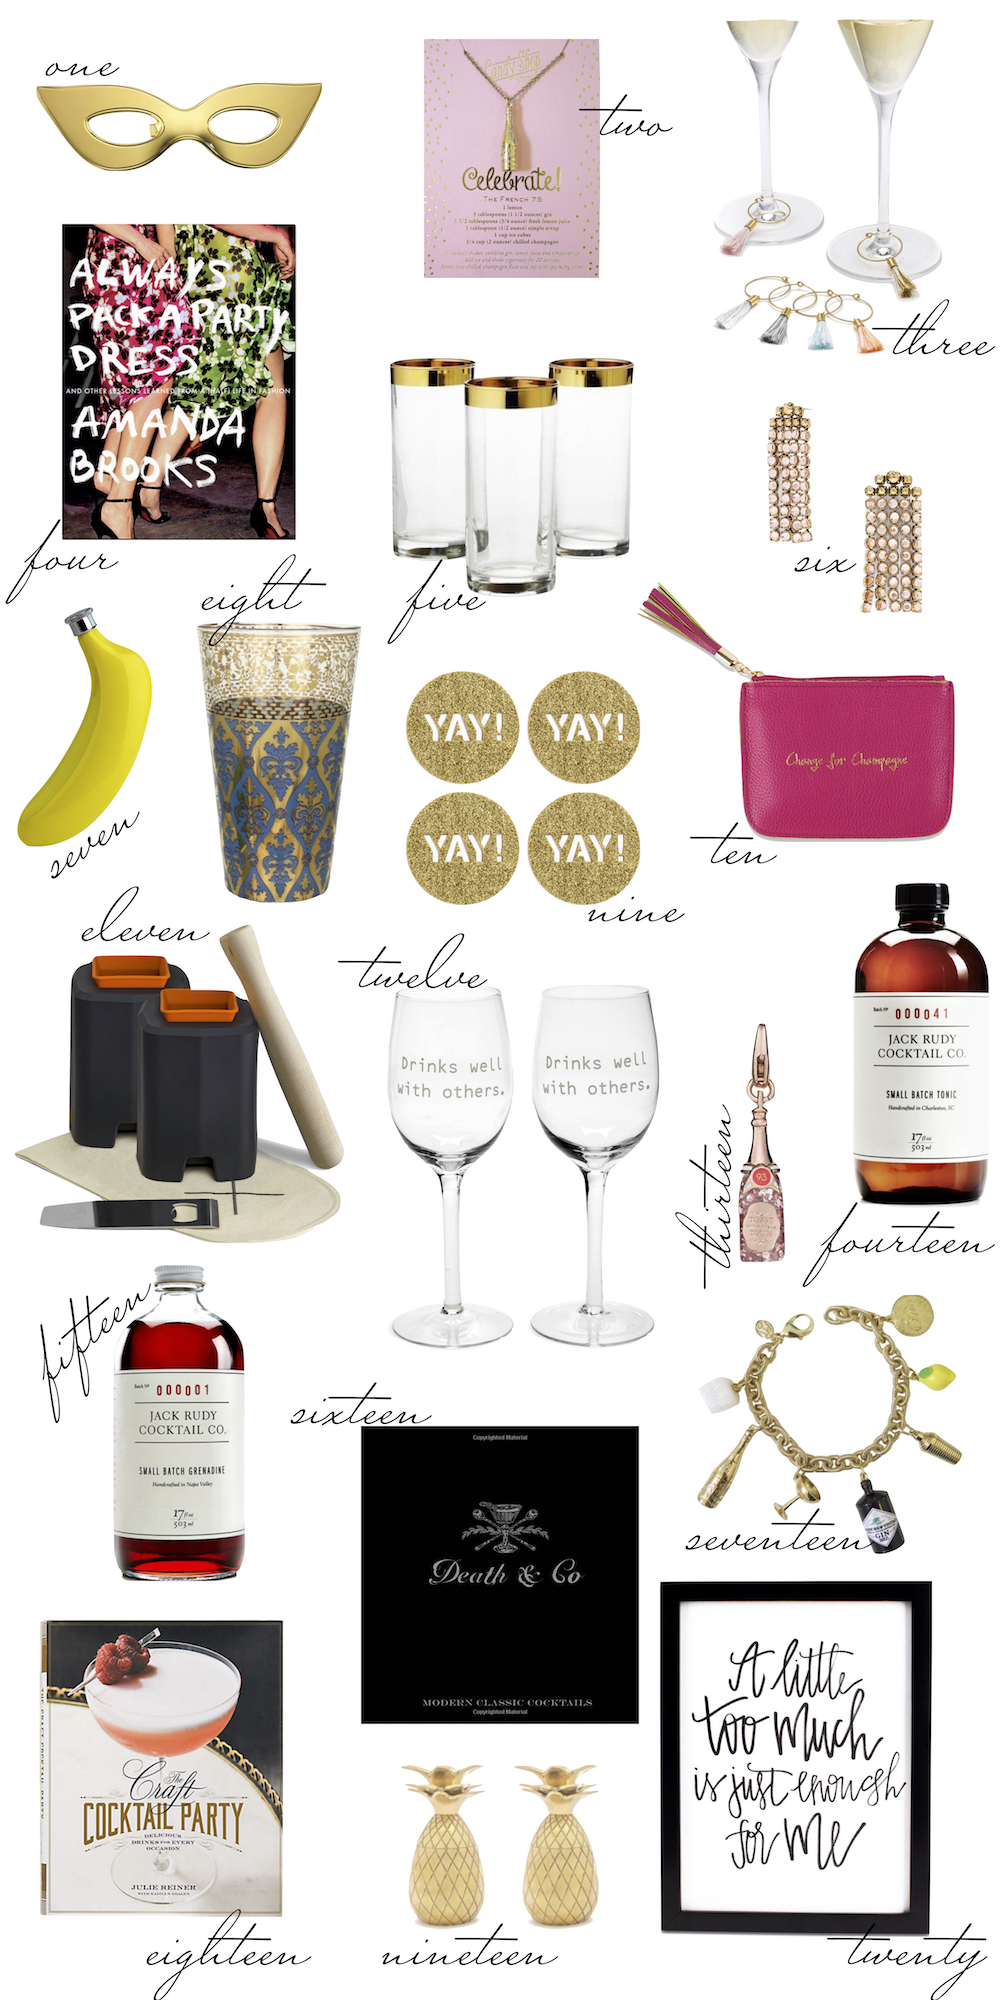 the stripe gift guide- the mixologist